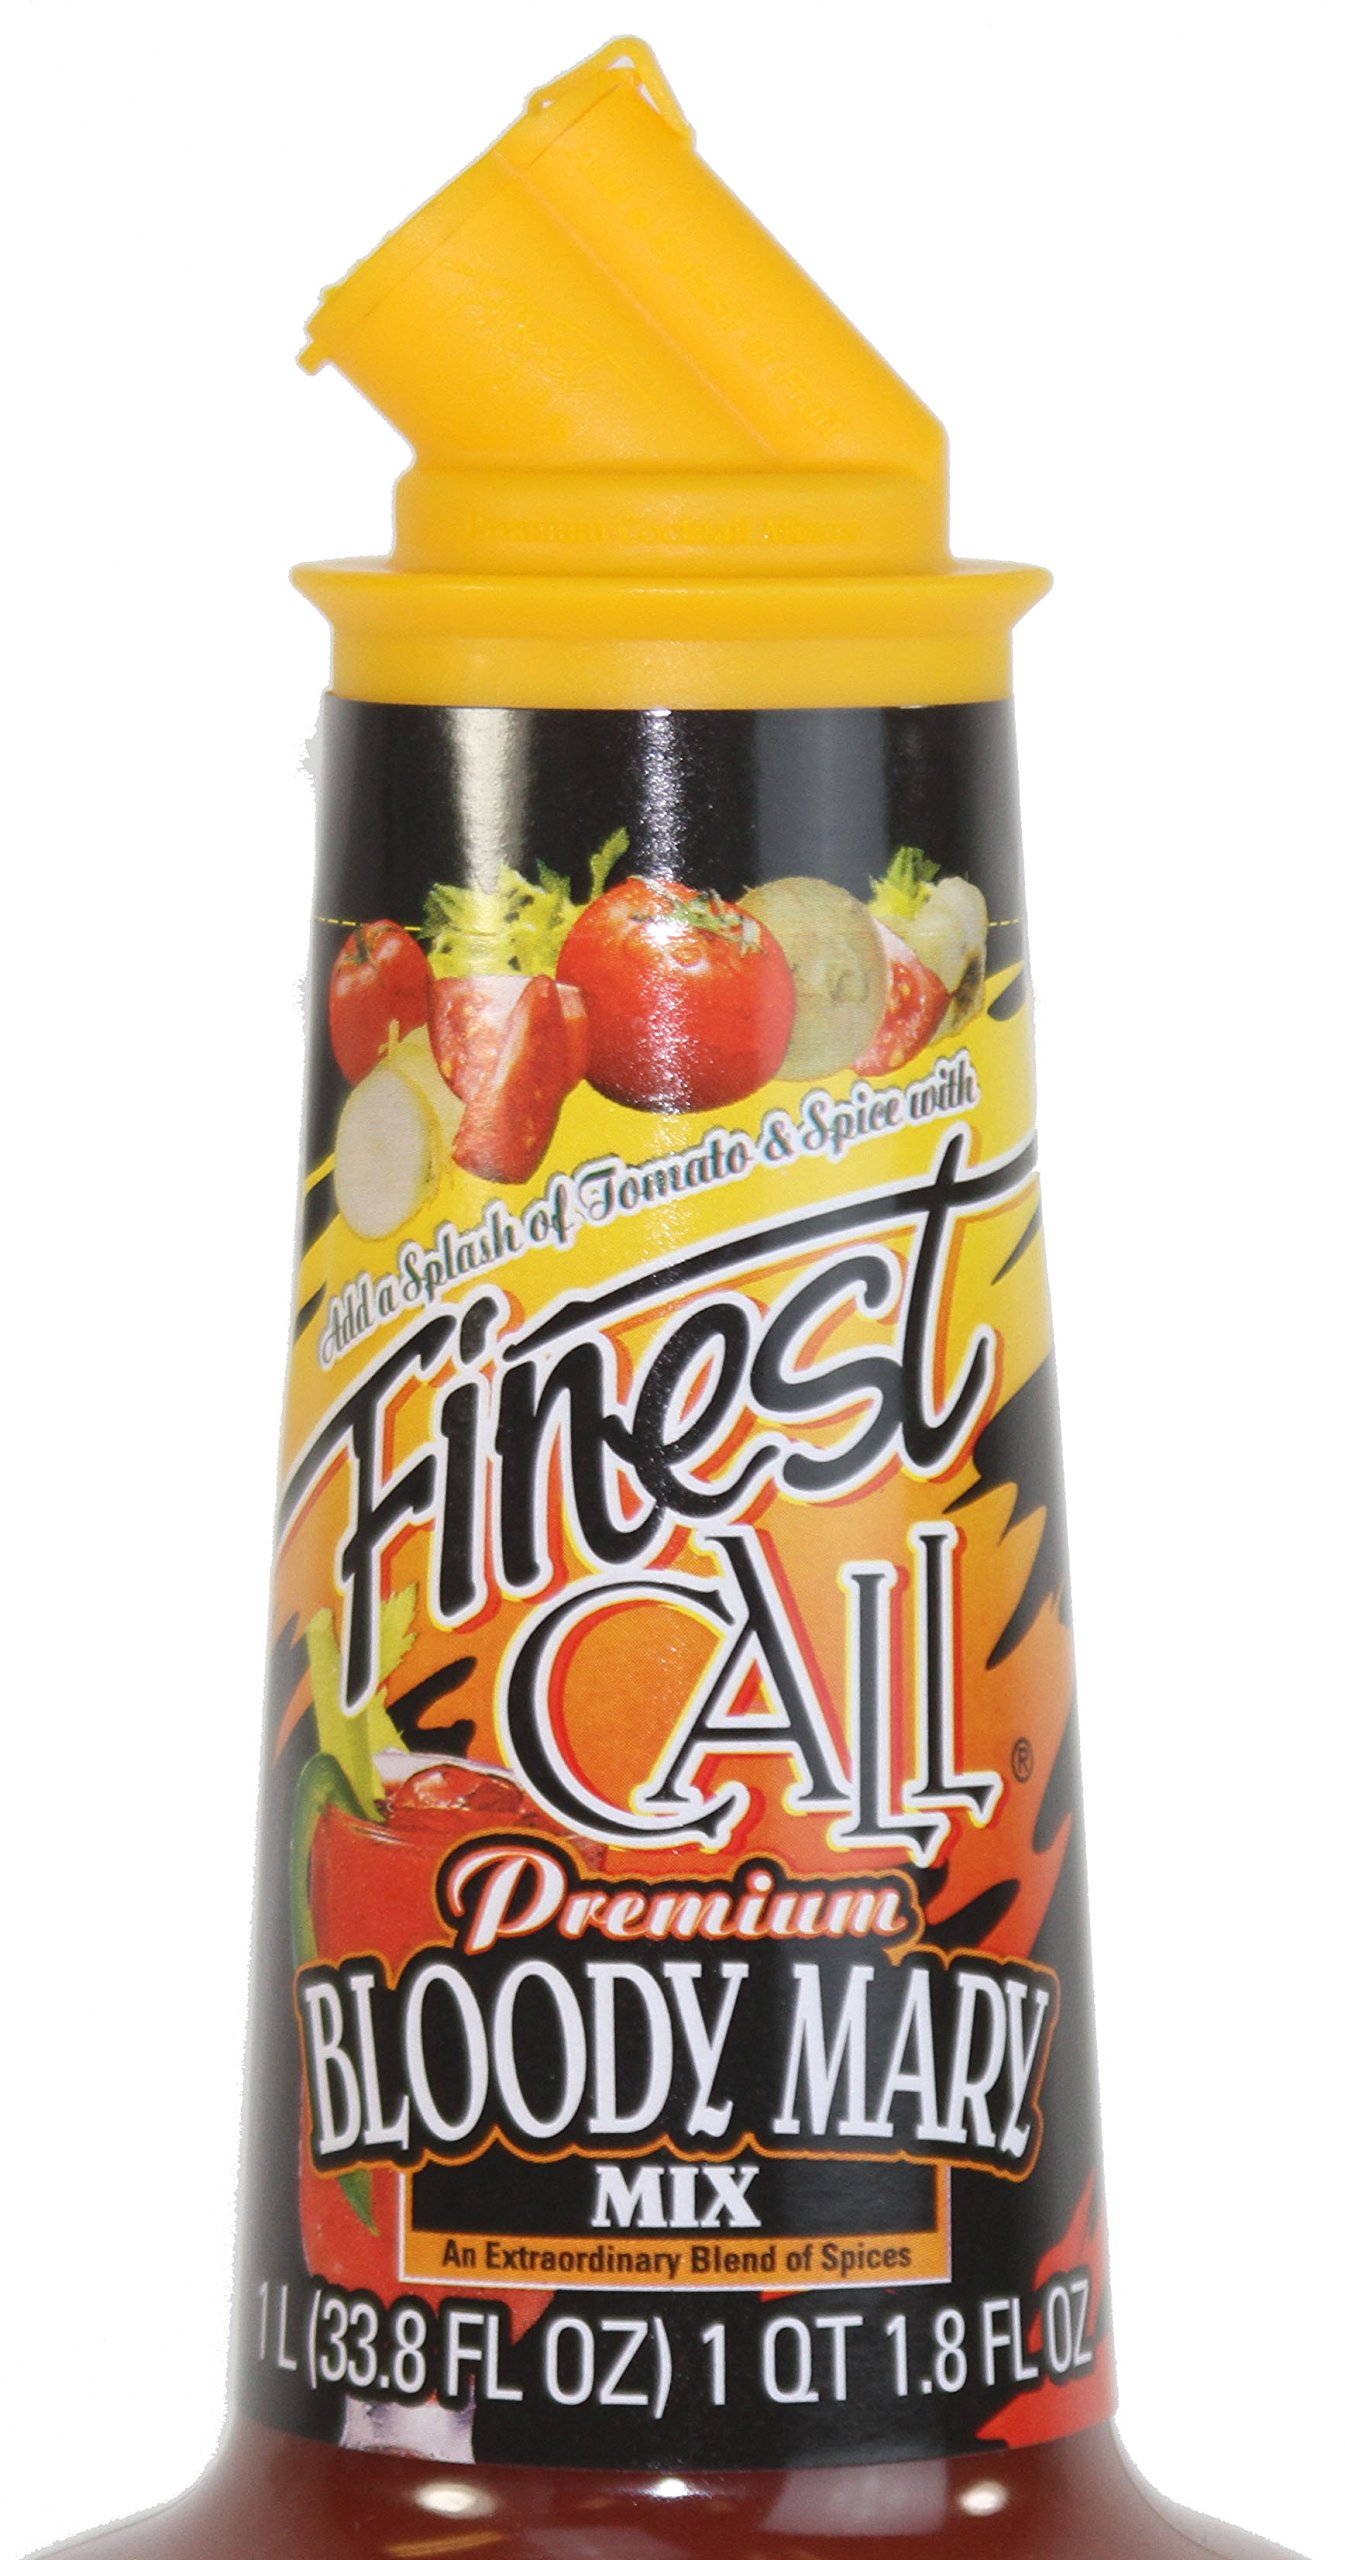 Finest Call Premium Bloody Mary Drink Mix, 1 Liter Bottle (33.8 Fl Oz), Pack of 3 by Finest Call (Image #3)